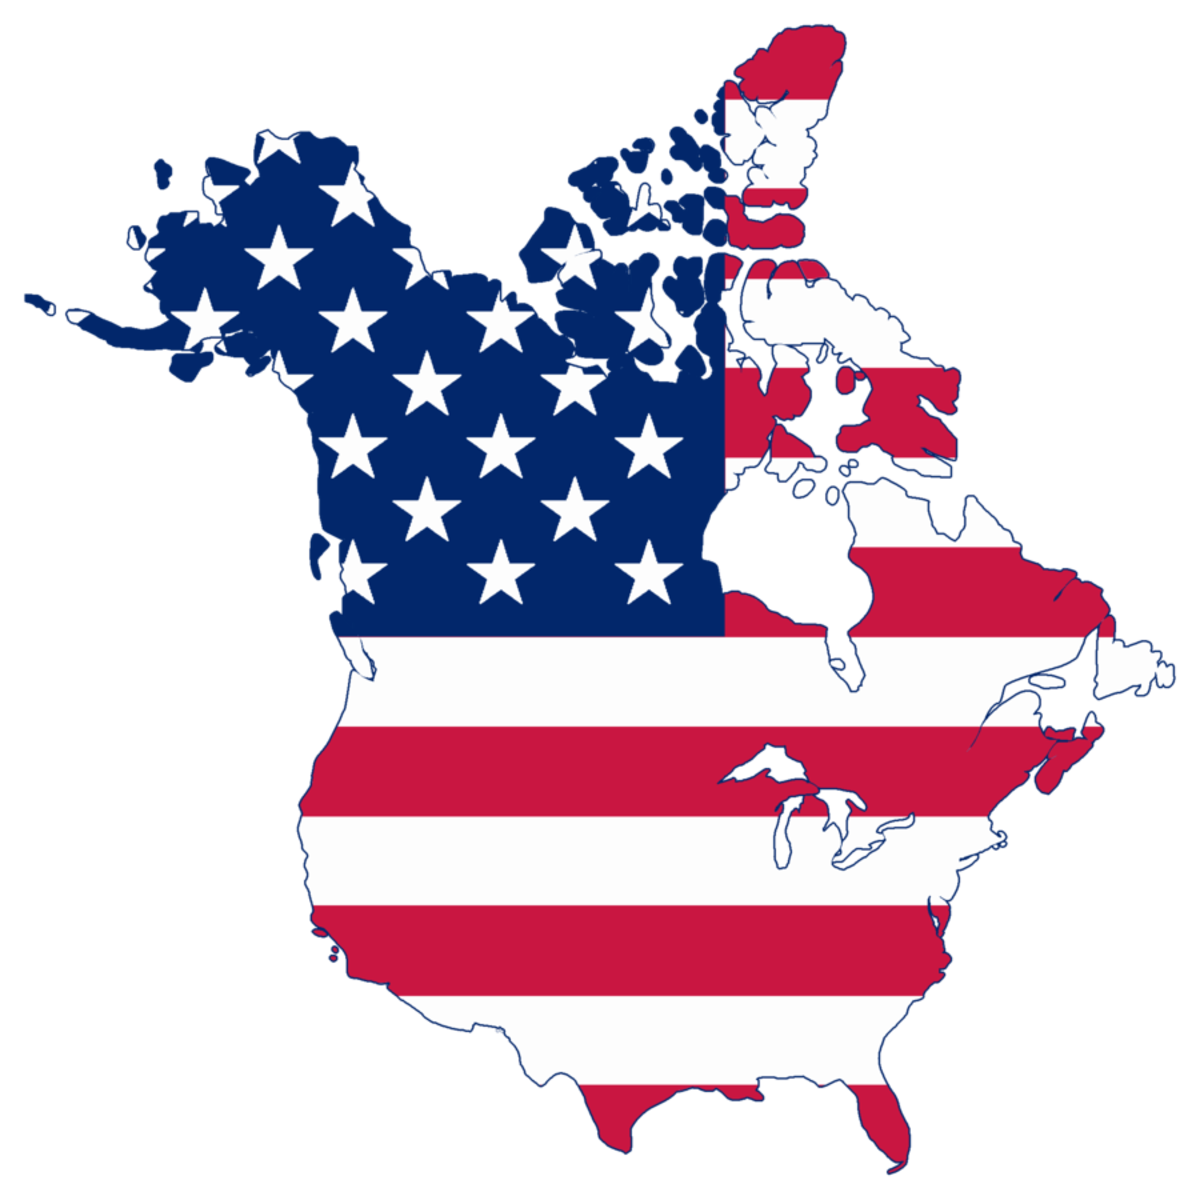 Throughout the years, there has often been talk of joining Canada and the United States—often through annexation, from the U.S. perspective.